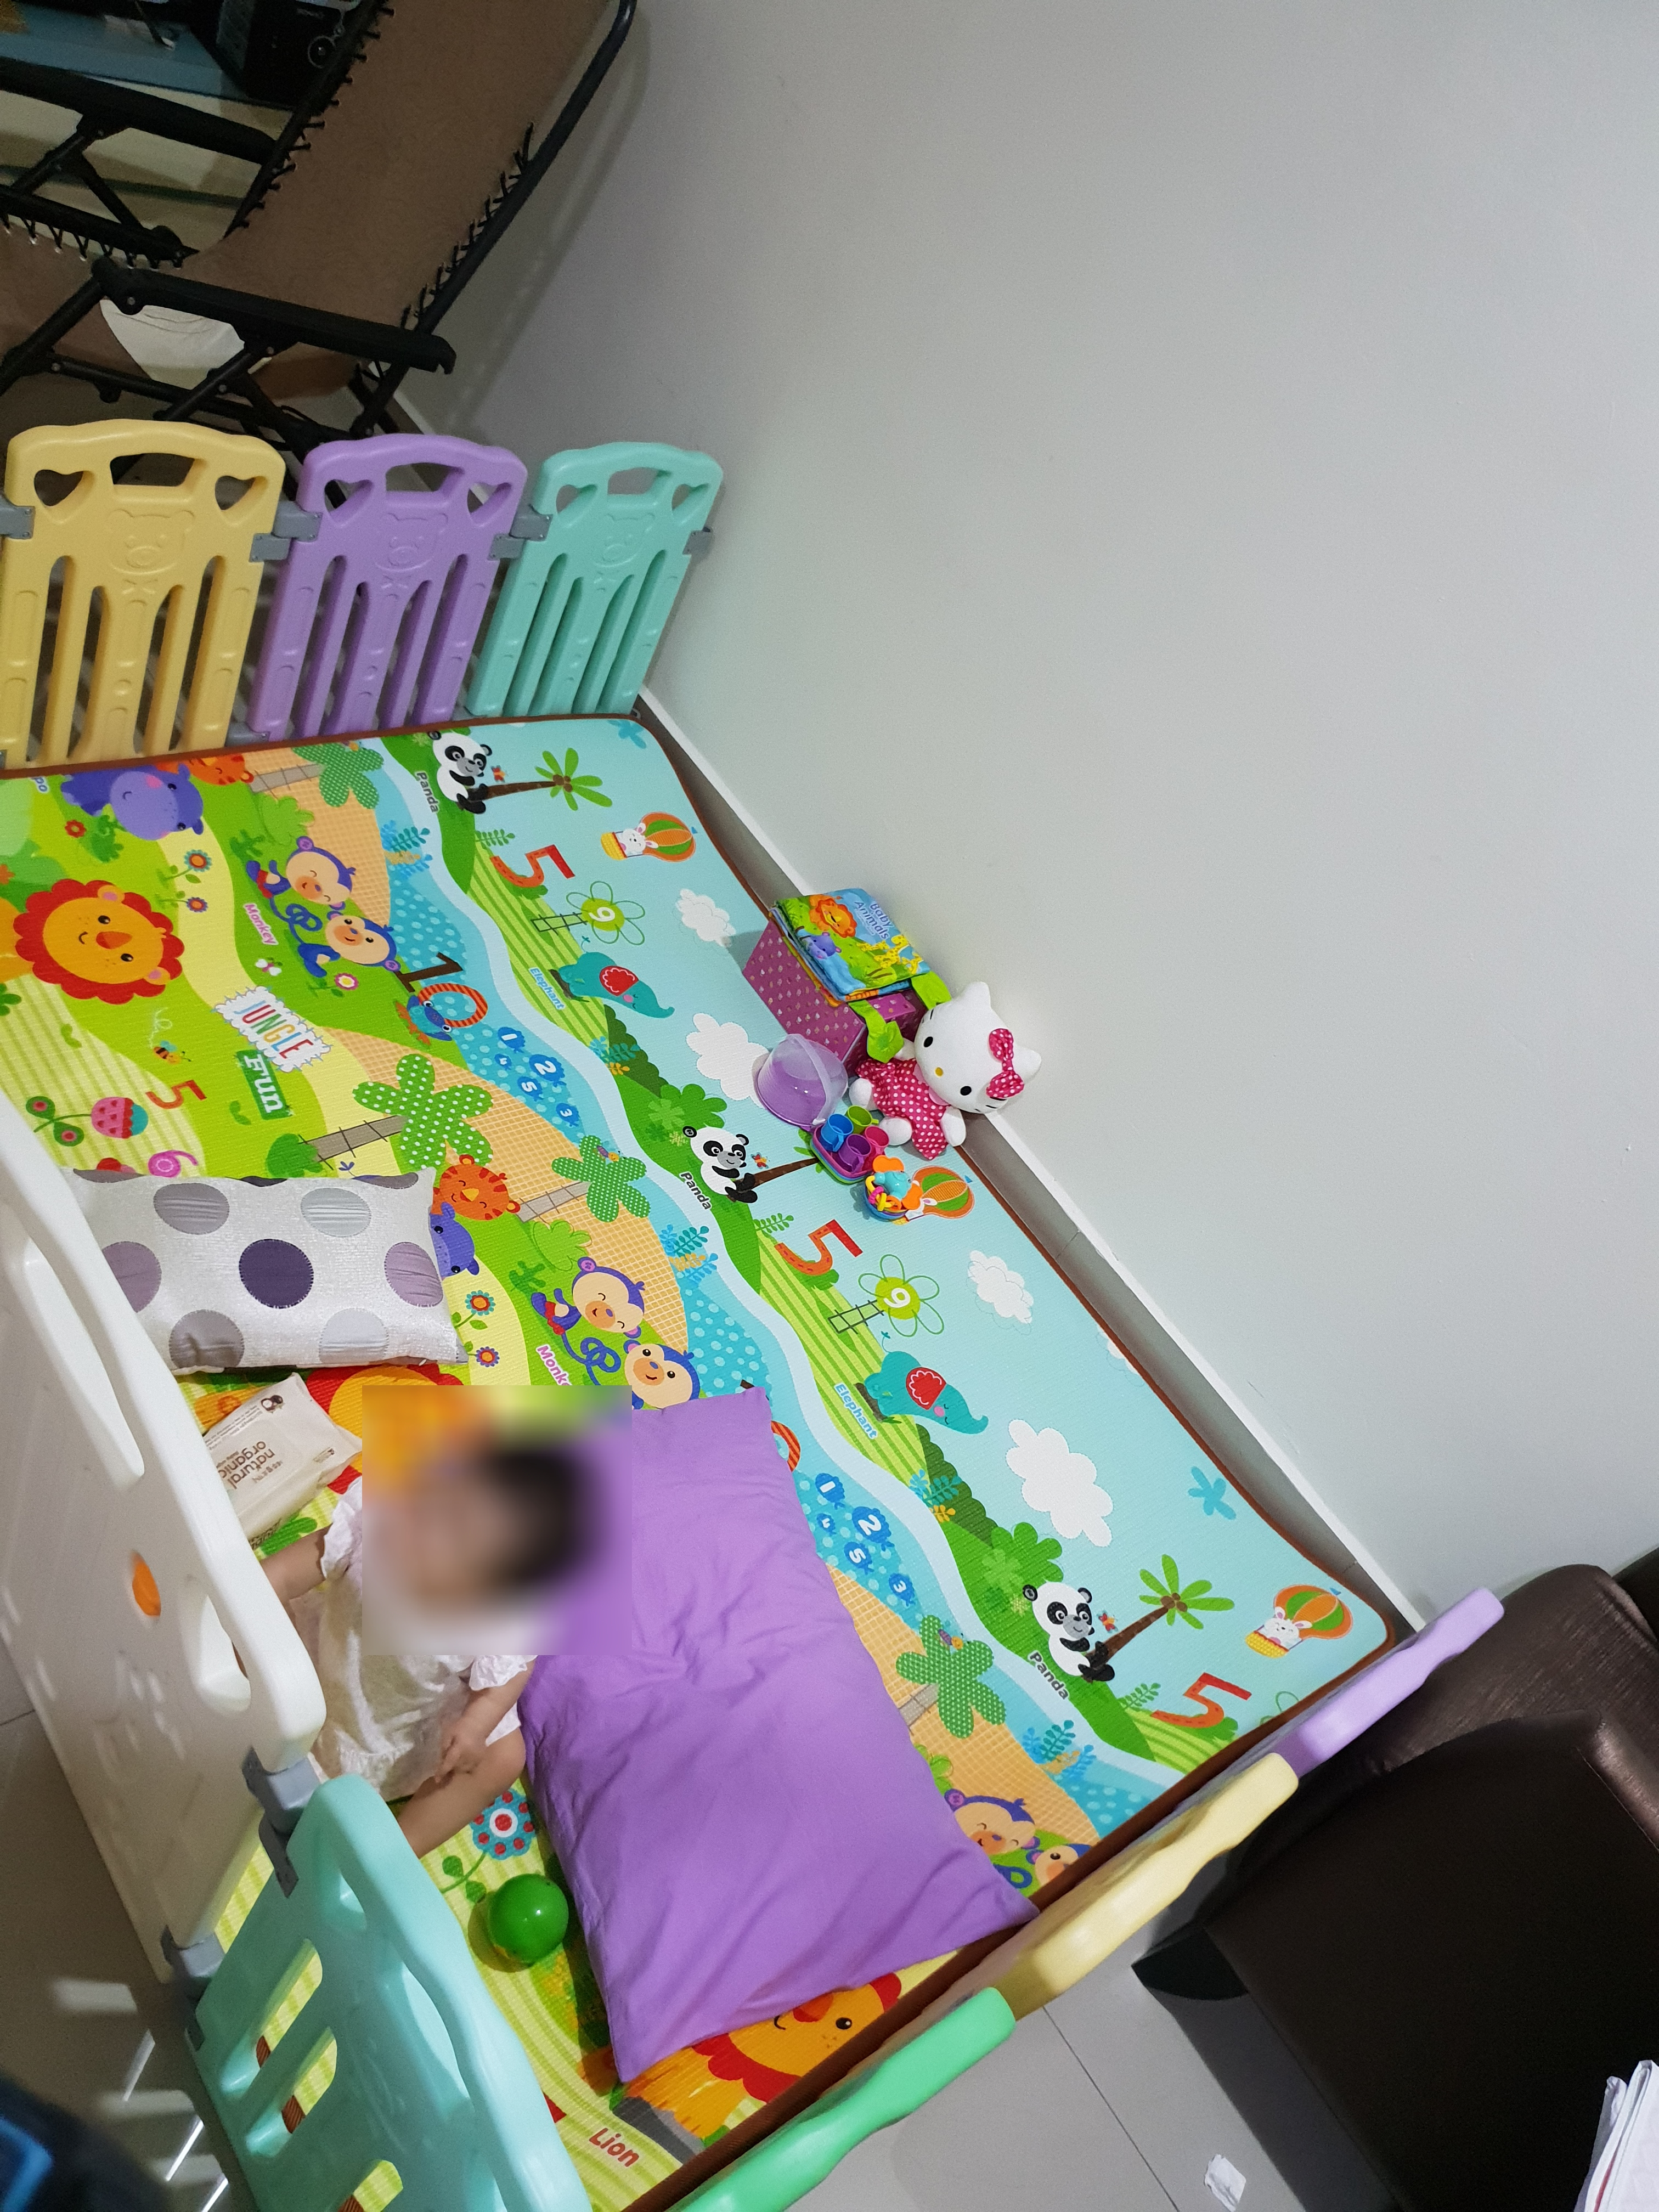 Coby Fence 8 2 3rb New Color Haus Butterfly I Bought Together With Parklon Mat And Both Give A Very Satisfactory Result To Me Now My Baby Is Happy Playing Inside Her Small Playground